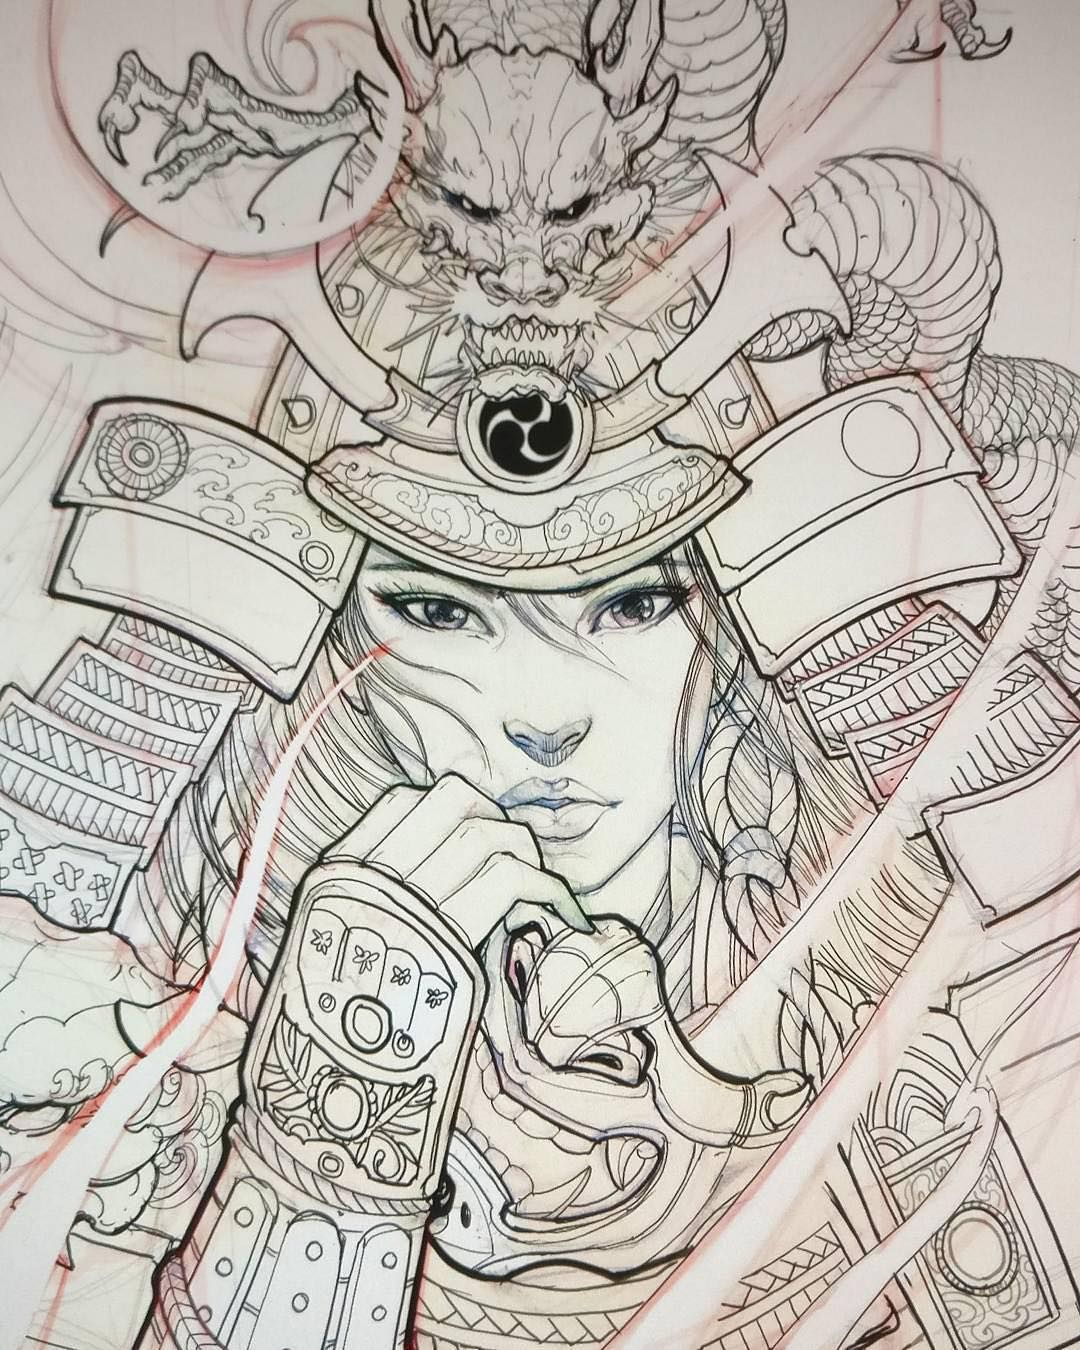 geisha warrior sketch by davidhoangtattoo for a tattoo design david is currently building the. Black Bedroom Furniture Sets. Home Design Ideas